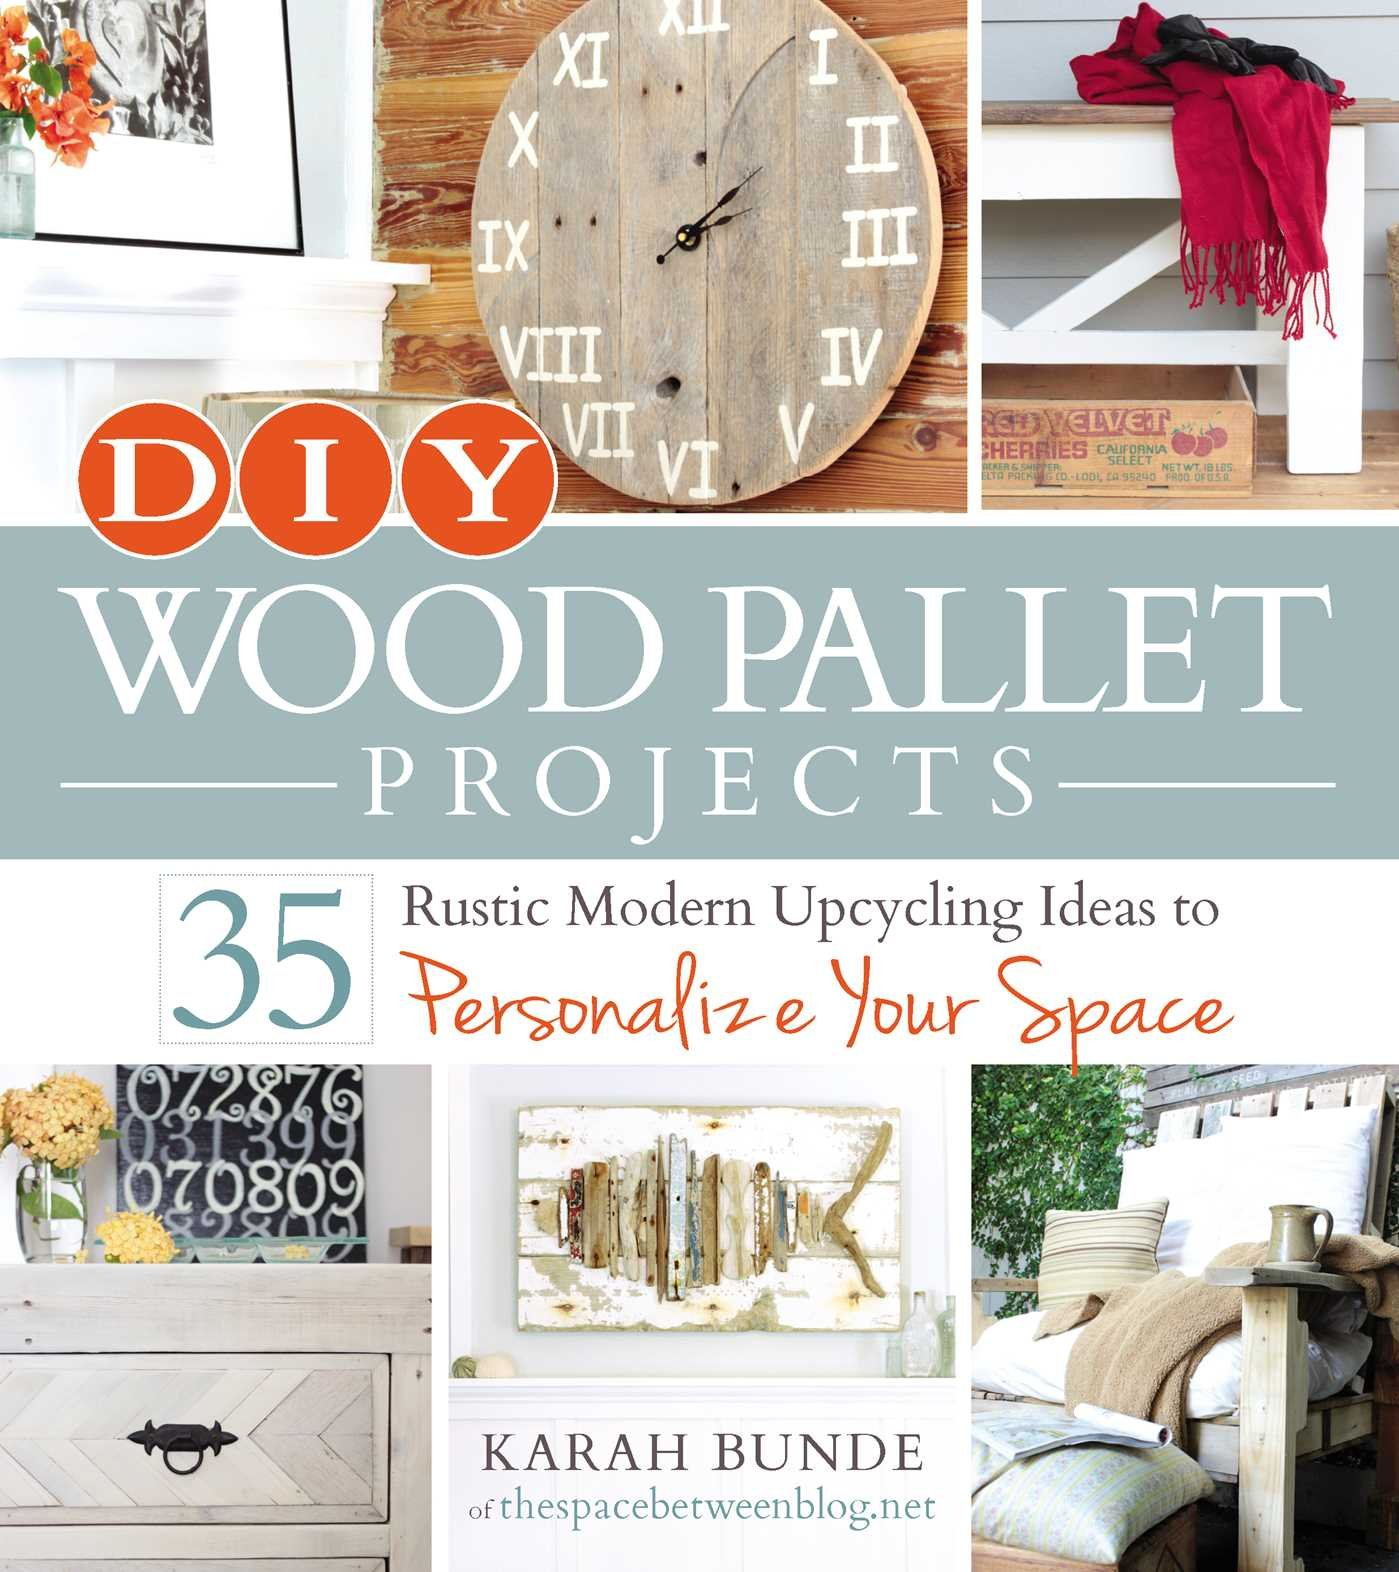 DIY Wood Pallet Projects: 35 Rustic Modern Upcycling Ideas to ...